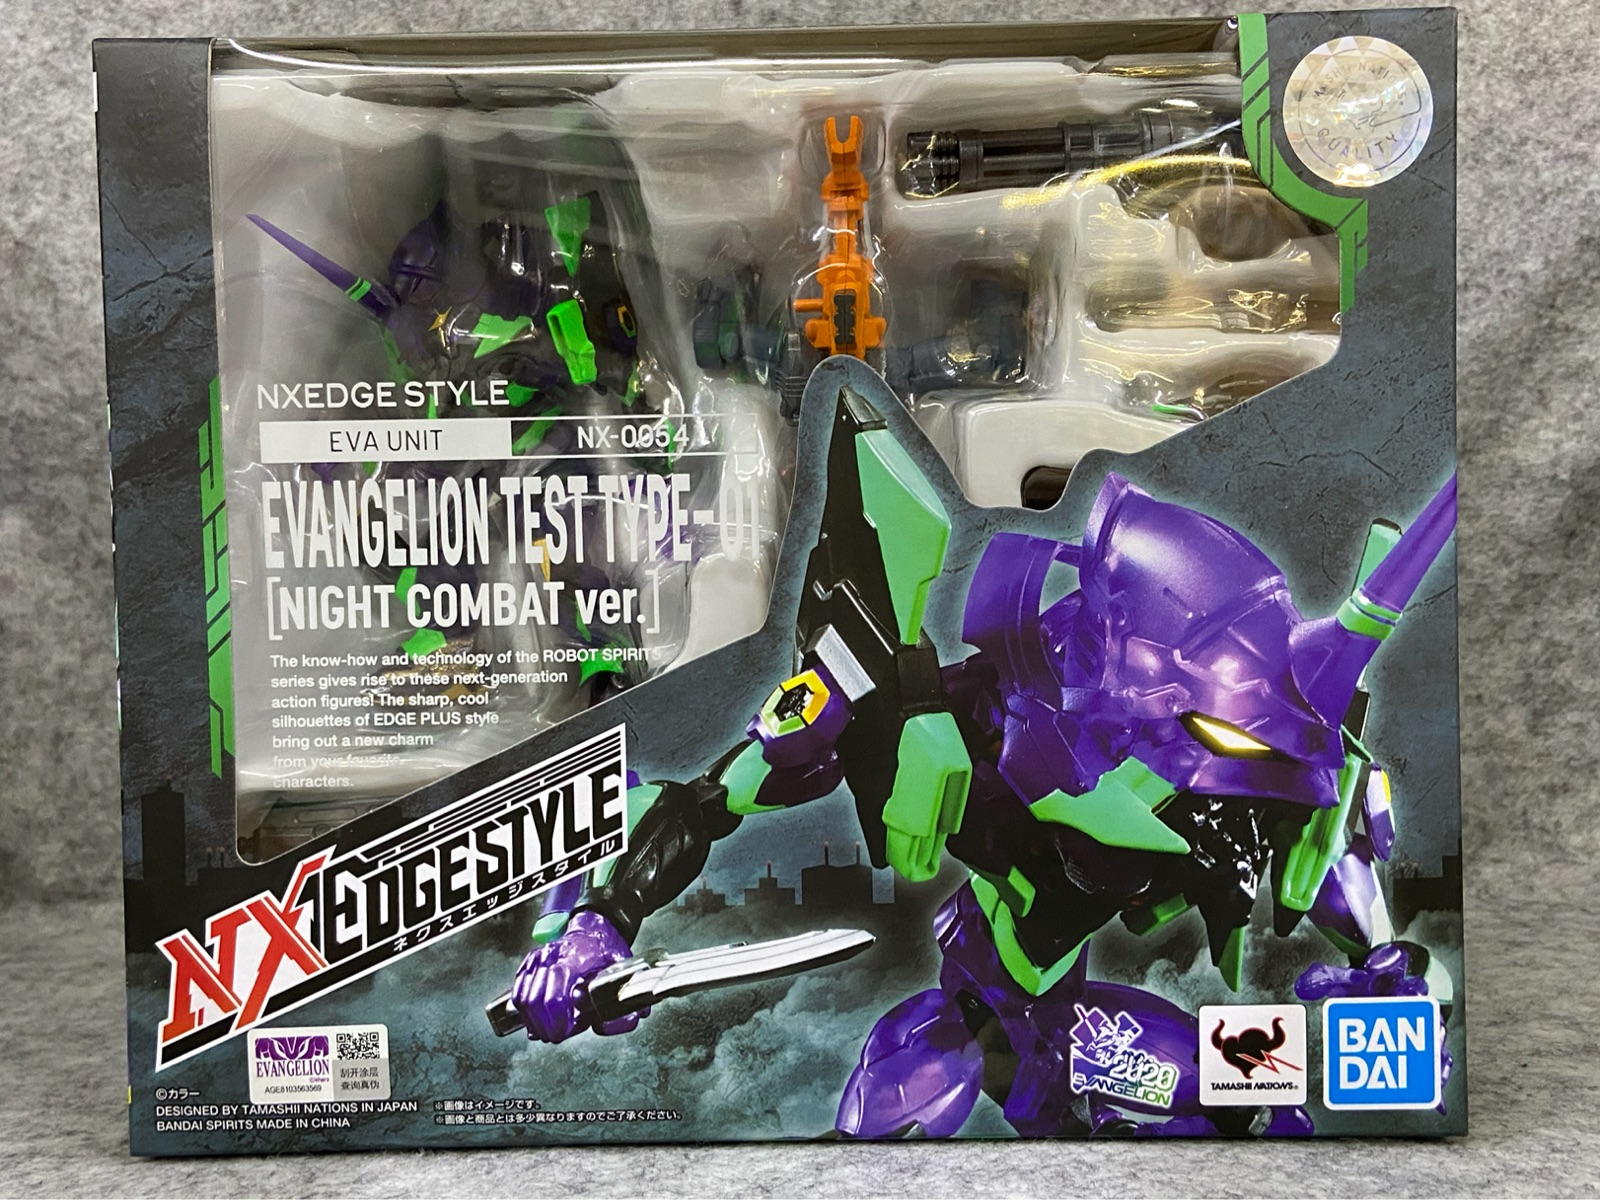 Special price spot price 10000 generation nxedge NX new century evangelical fighter EVA first aircraft night combat